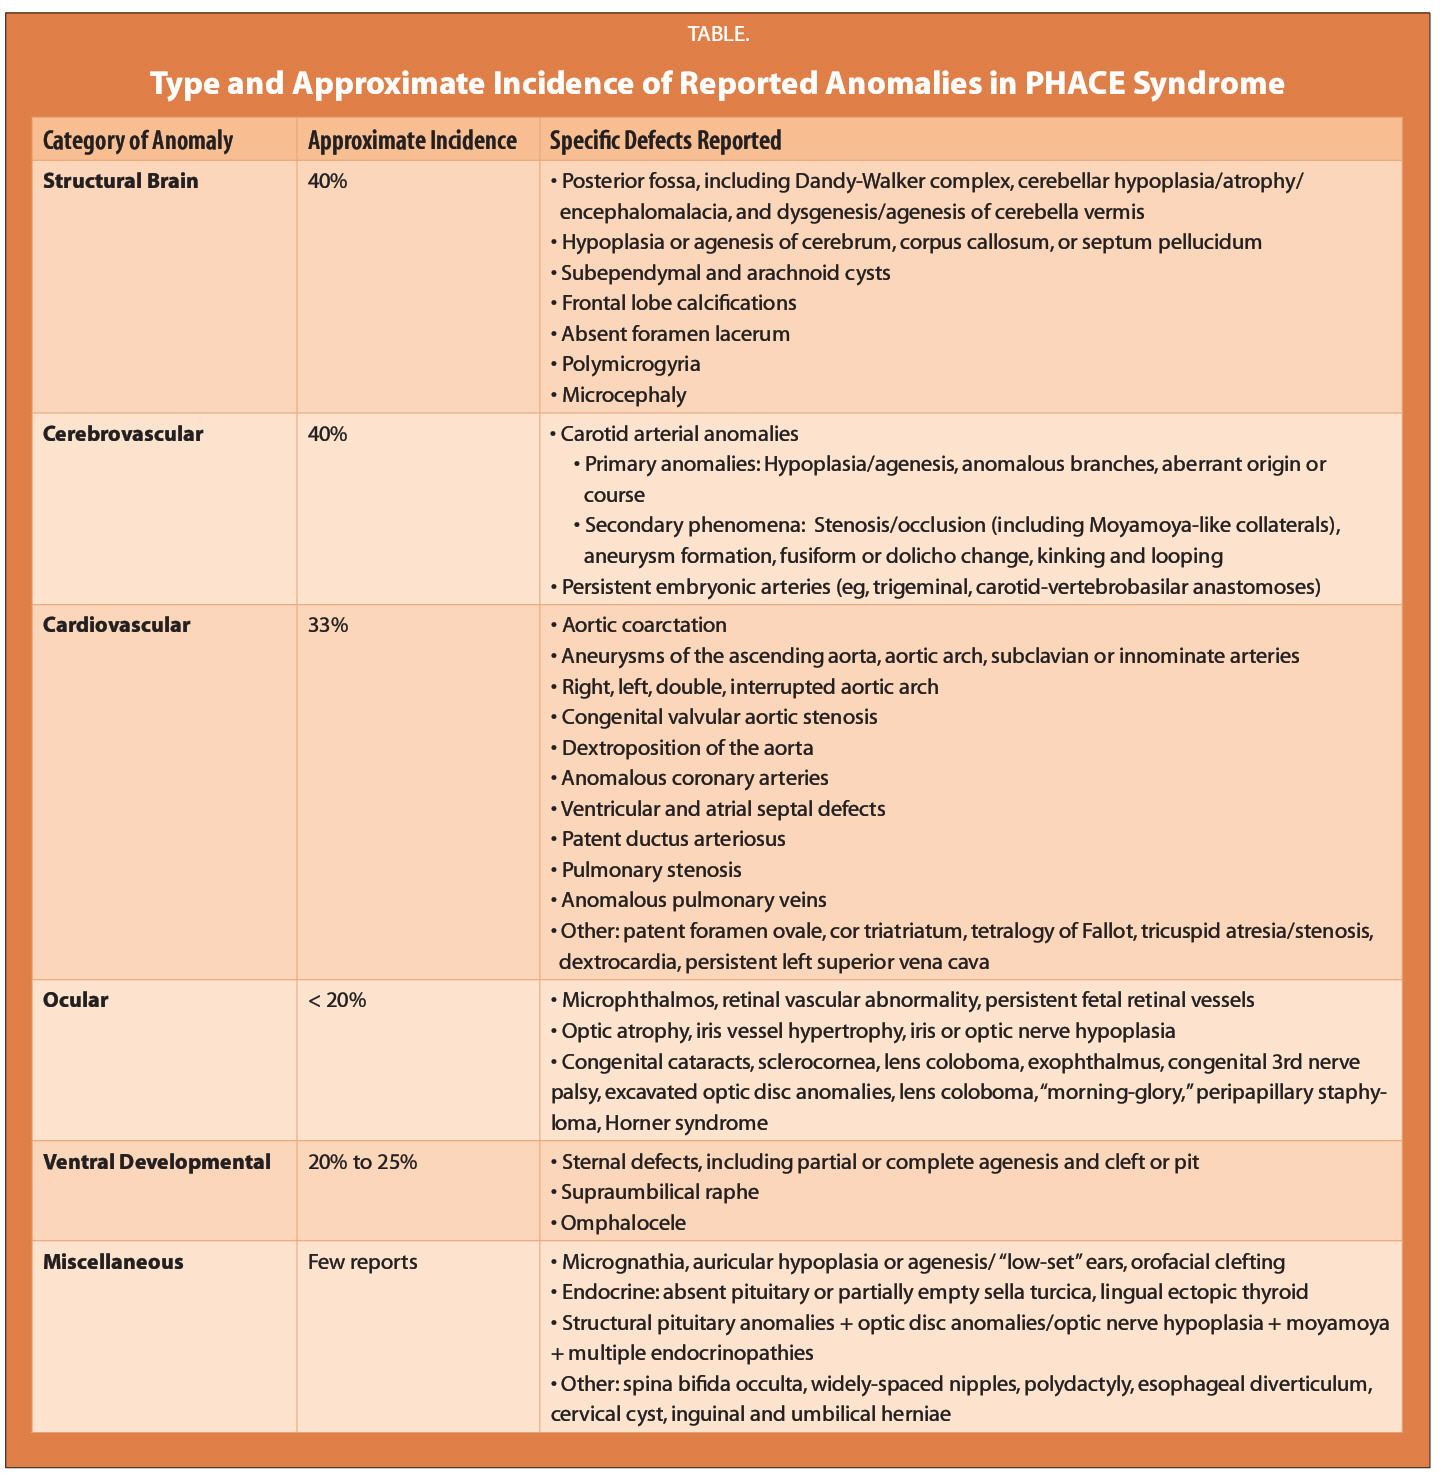 TABLE.Type and Approximate Incidence of Reported Anomalies in PHACE Syndrome